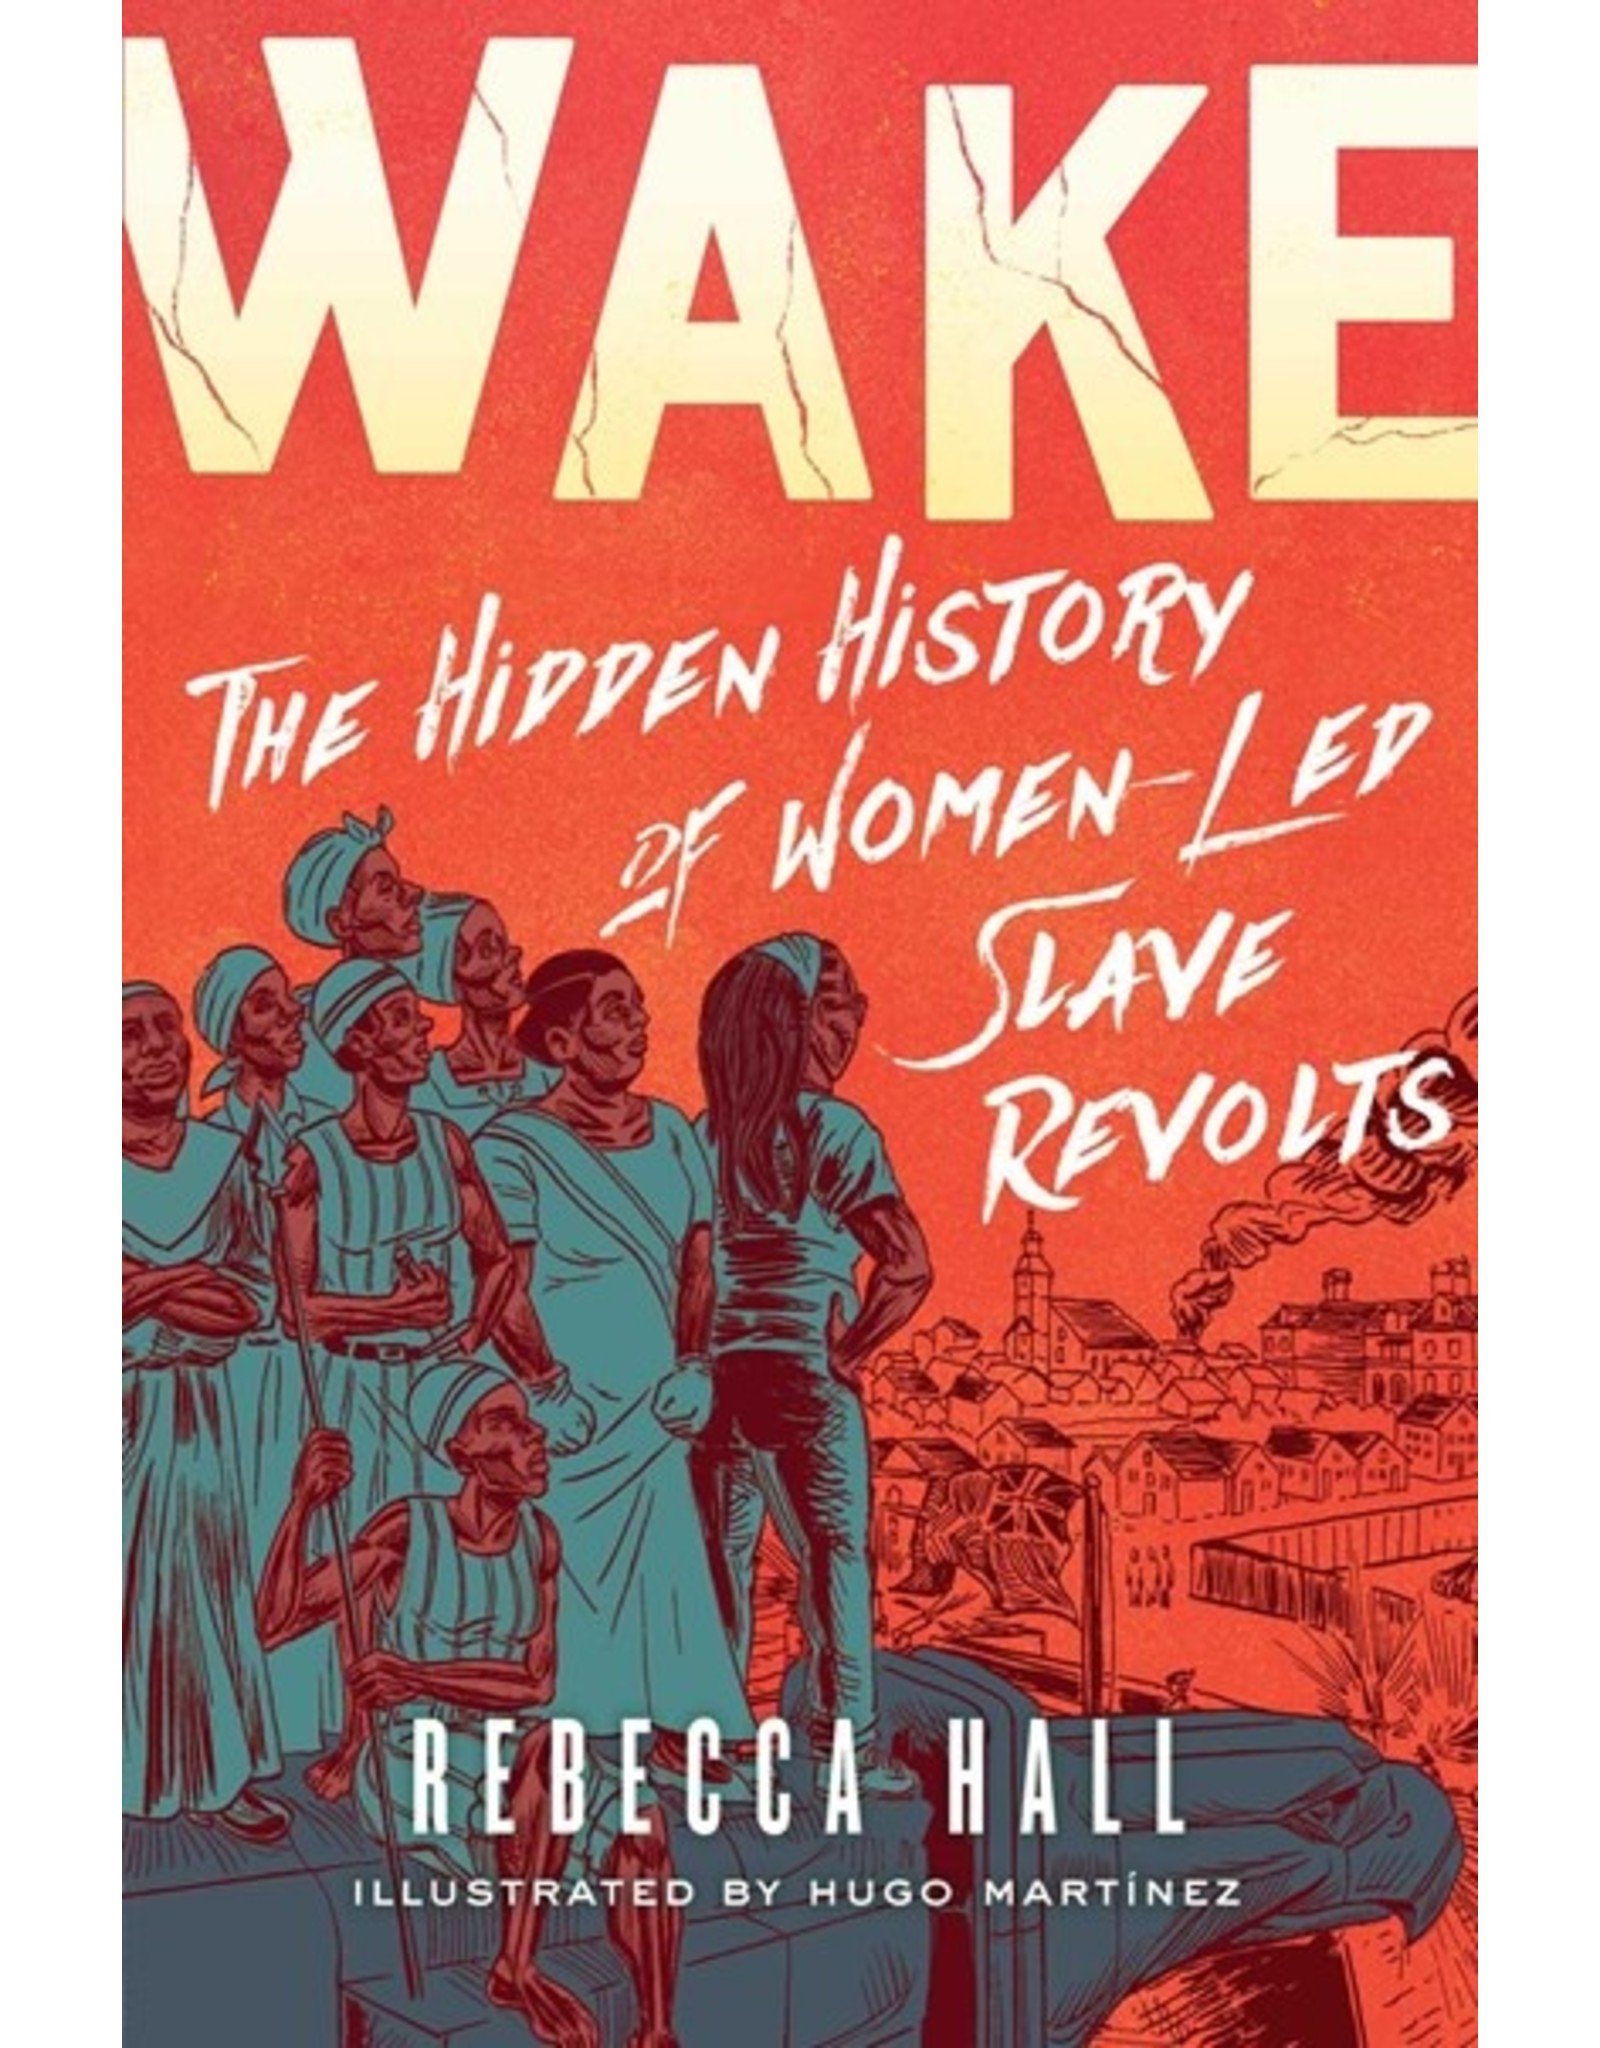 Books Wake: The Hidden History of Women -Led Slave Revolts by Rebecca Hall